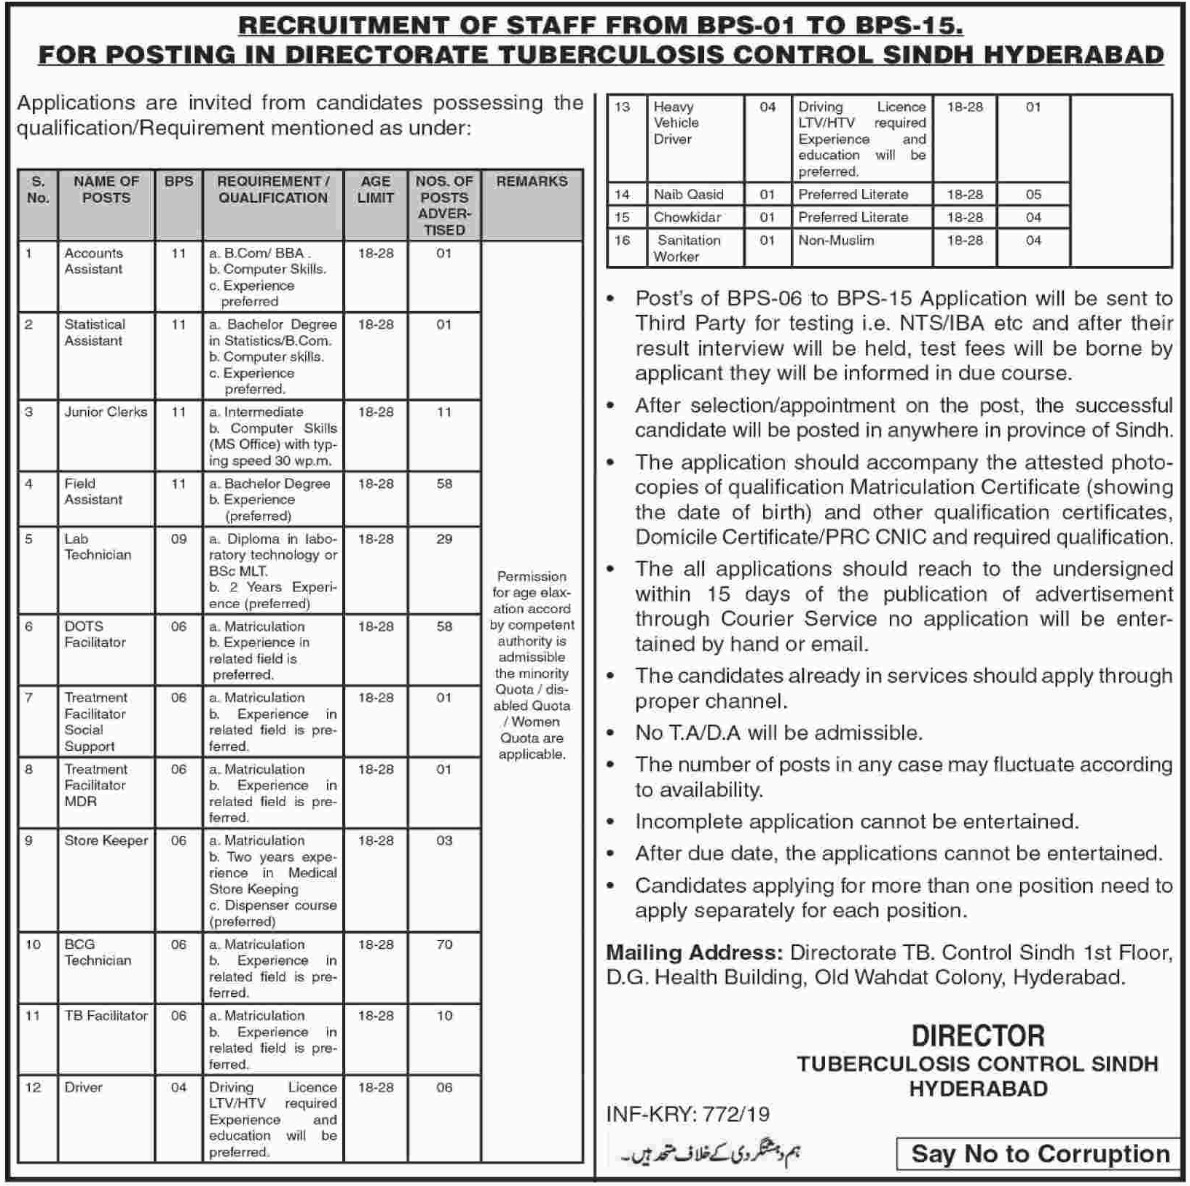 Directorate Tuberculosis Control Sindh Hyderabad Jobs 2019 Health Department Latest